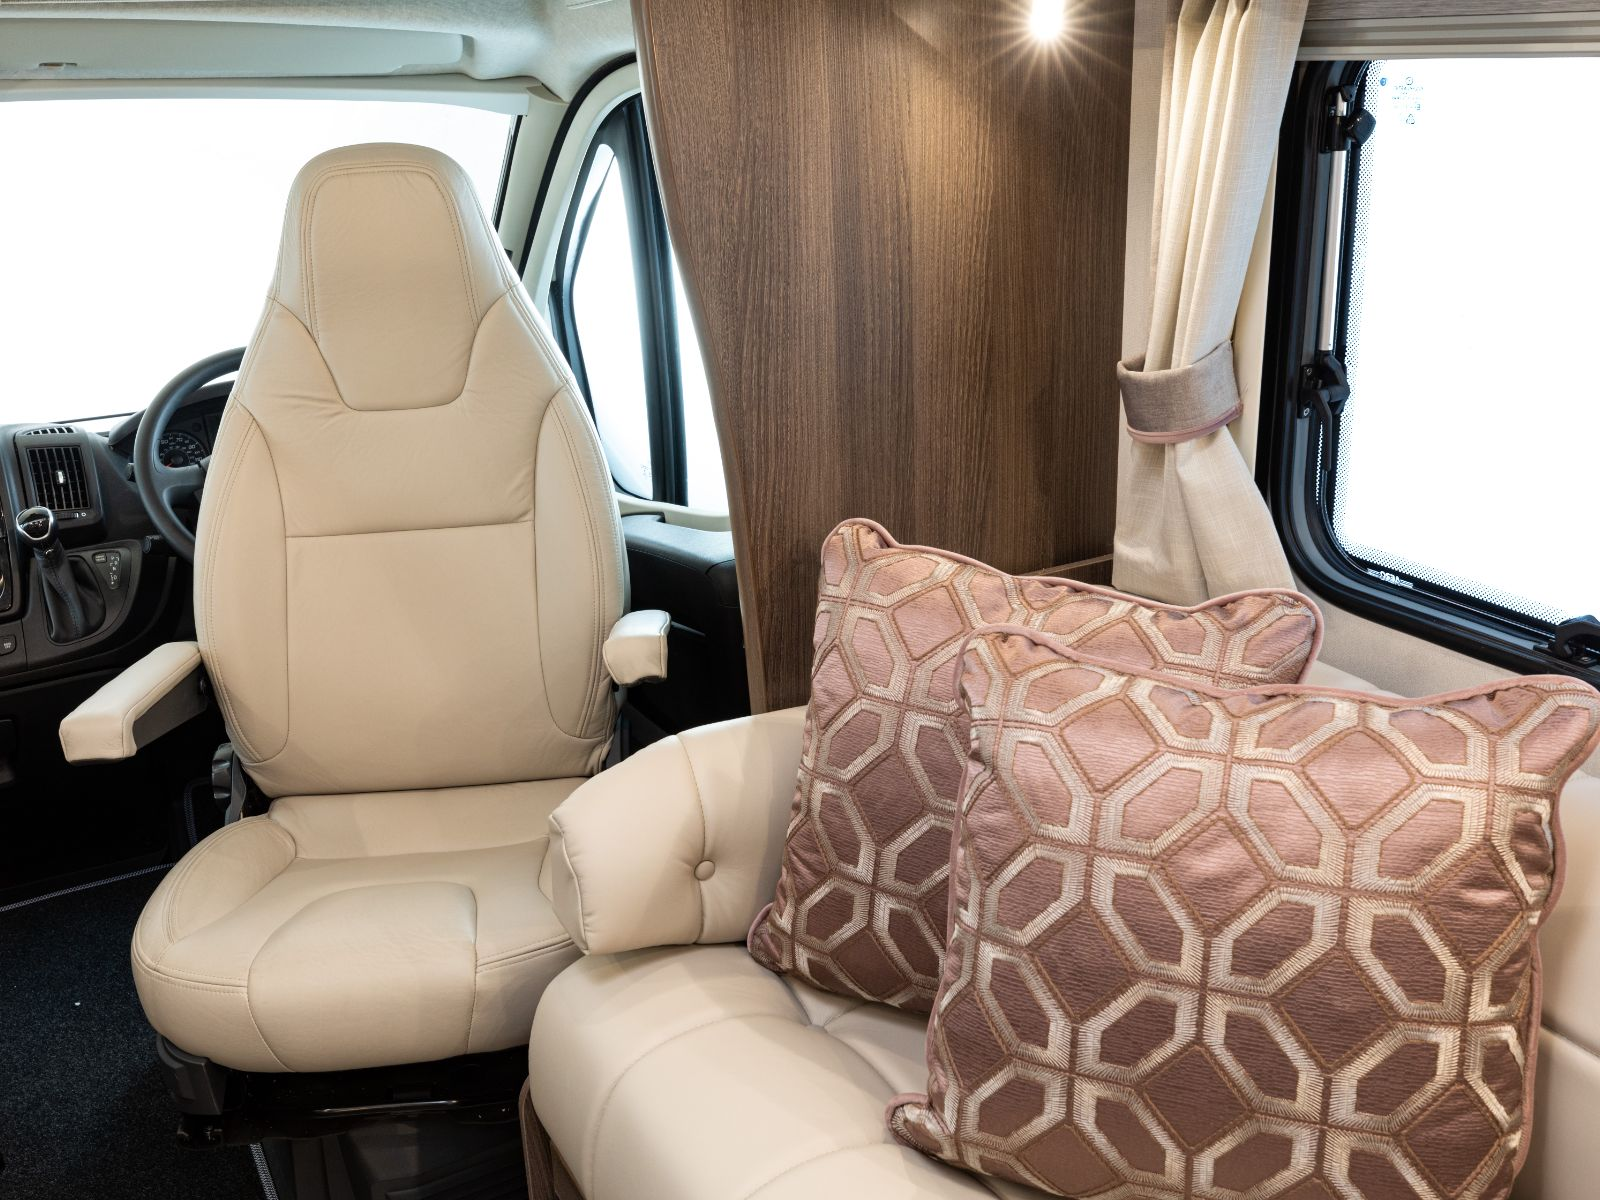 Sofa decorated with cushions and drivers seat behind'